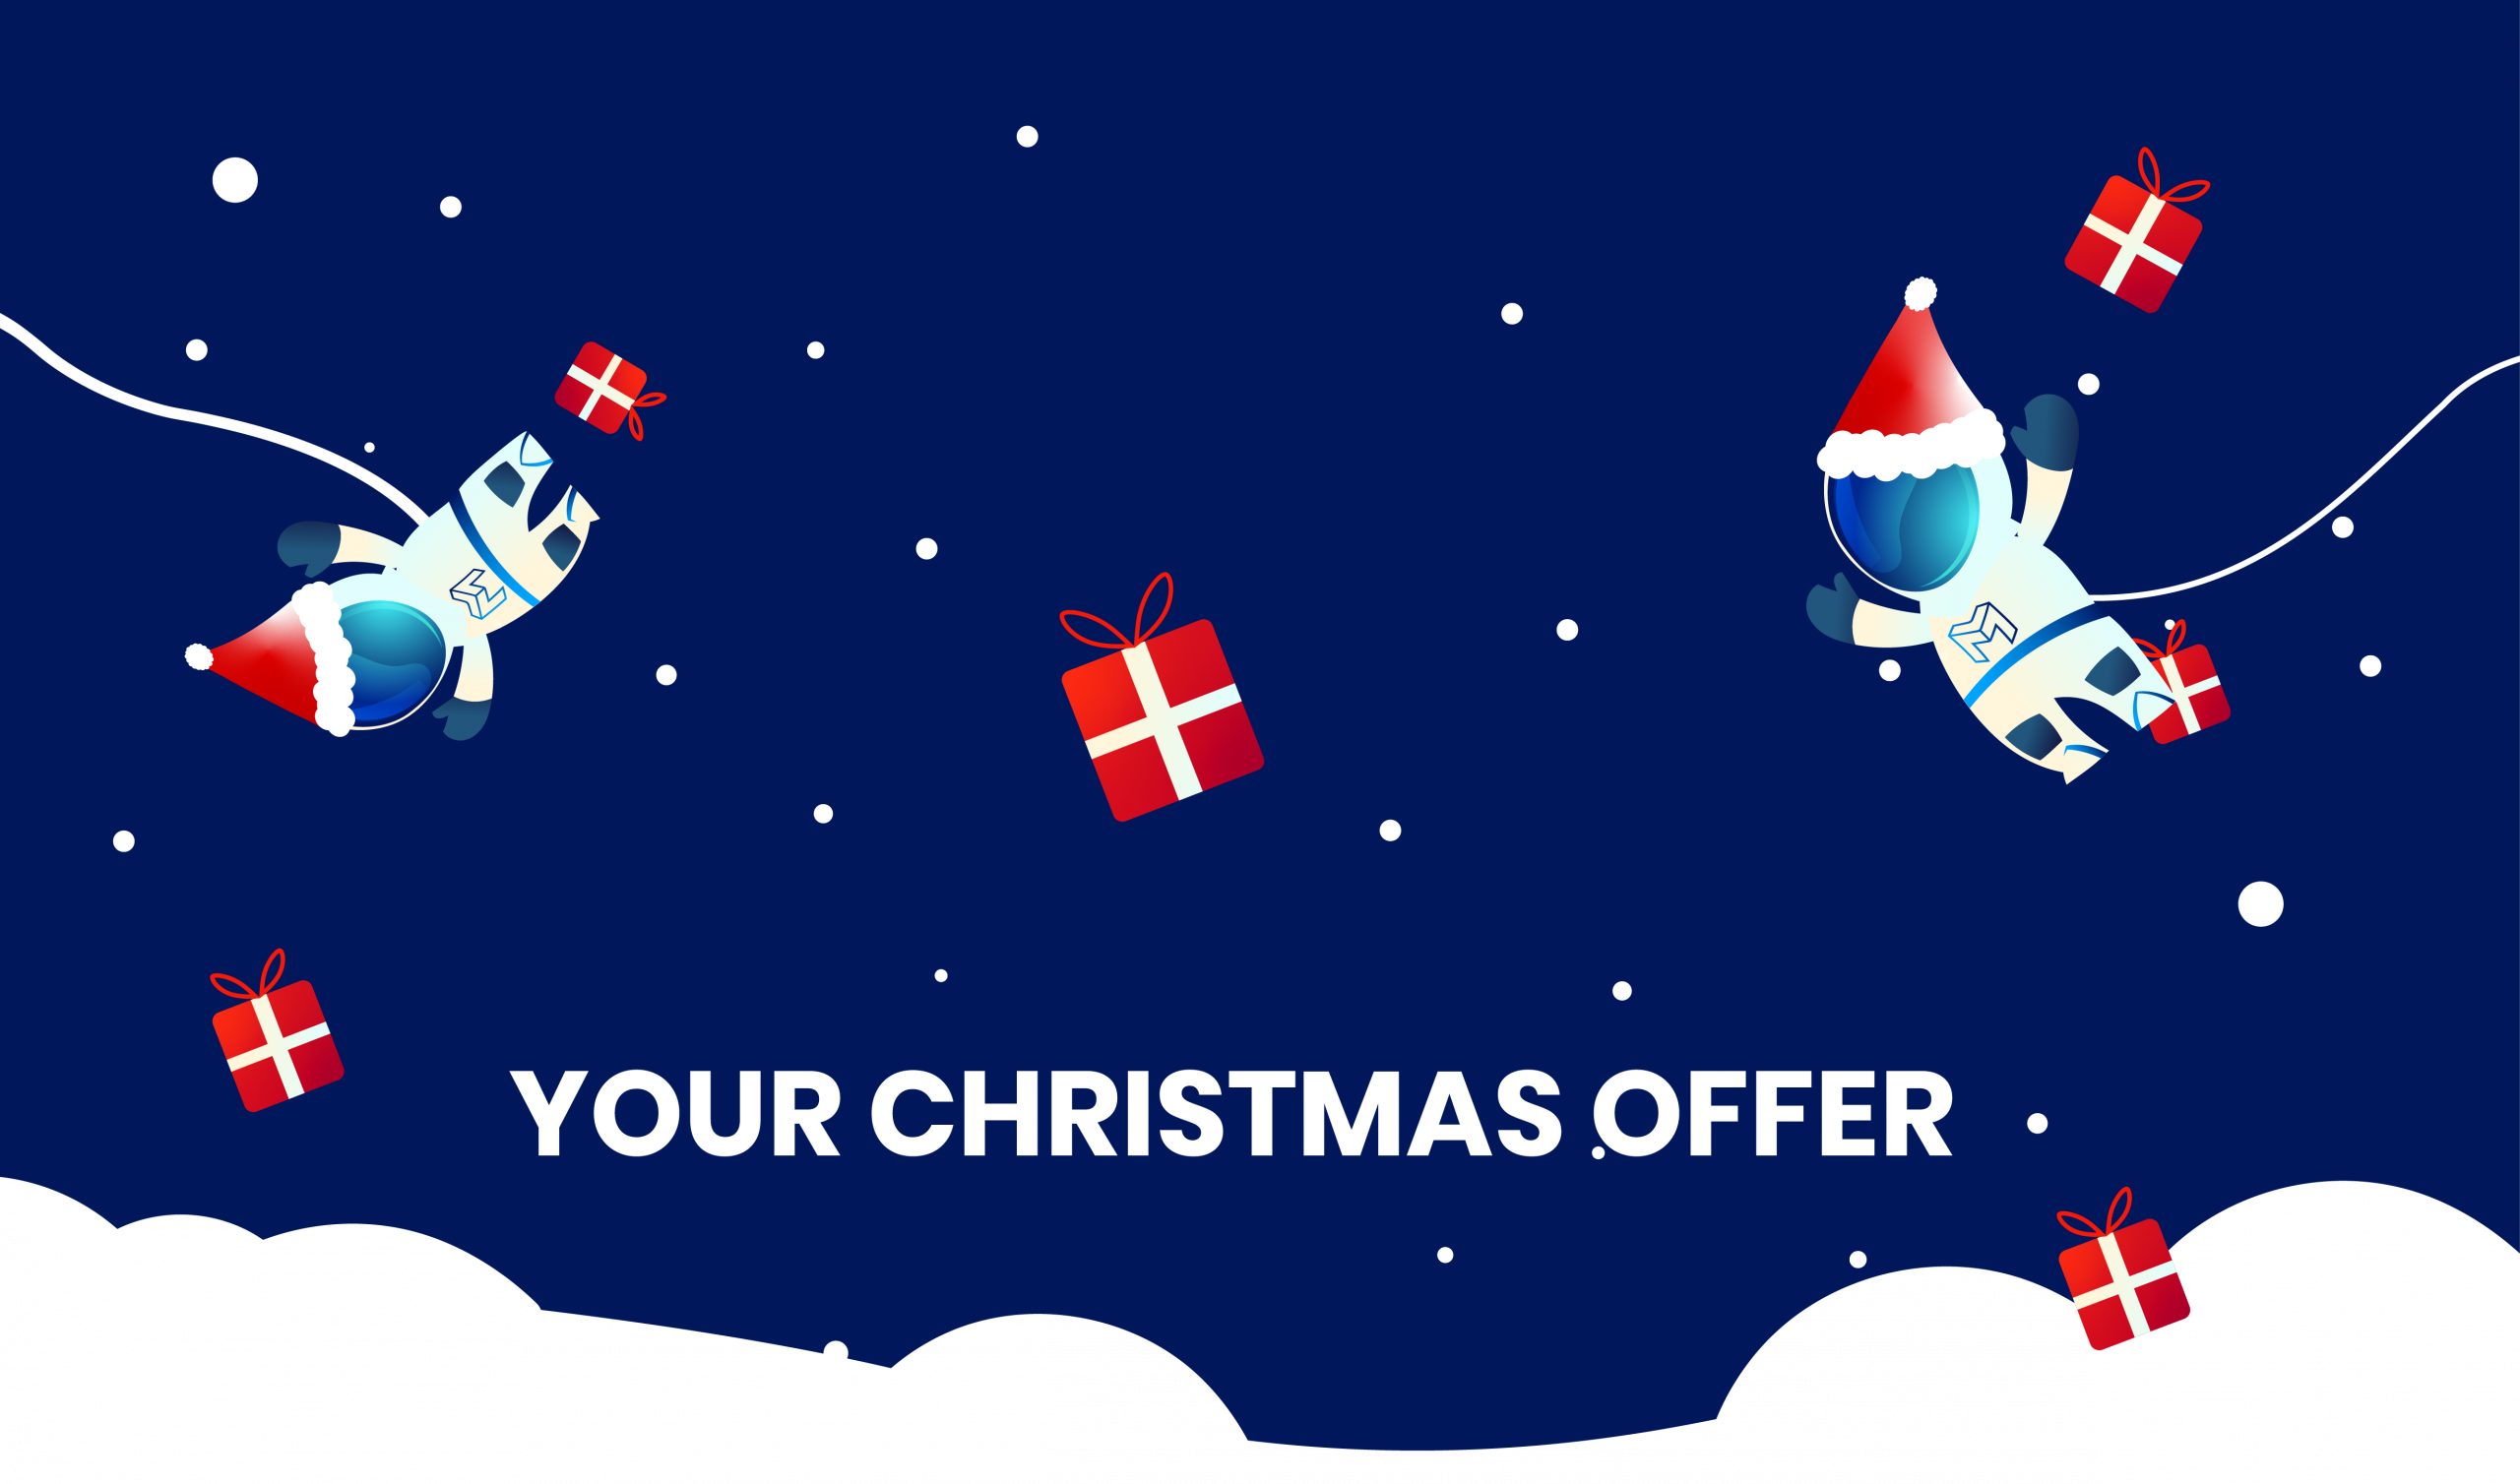 Christmas special offer: Free email templates!